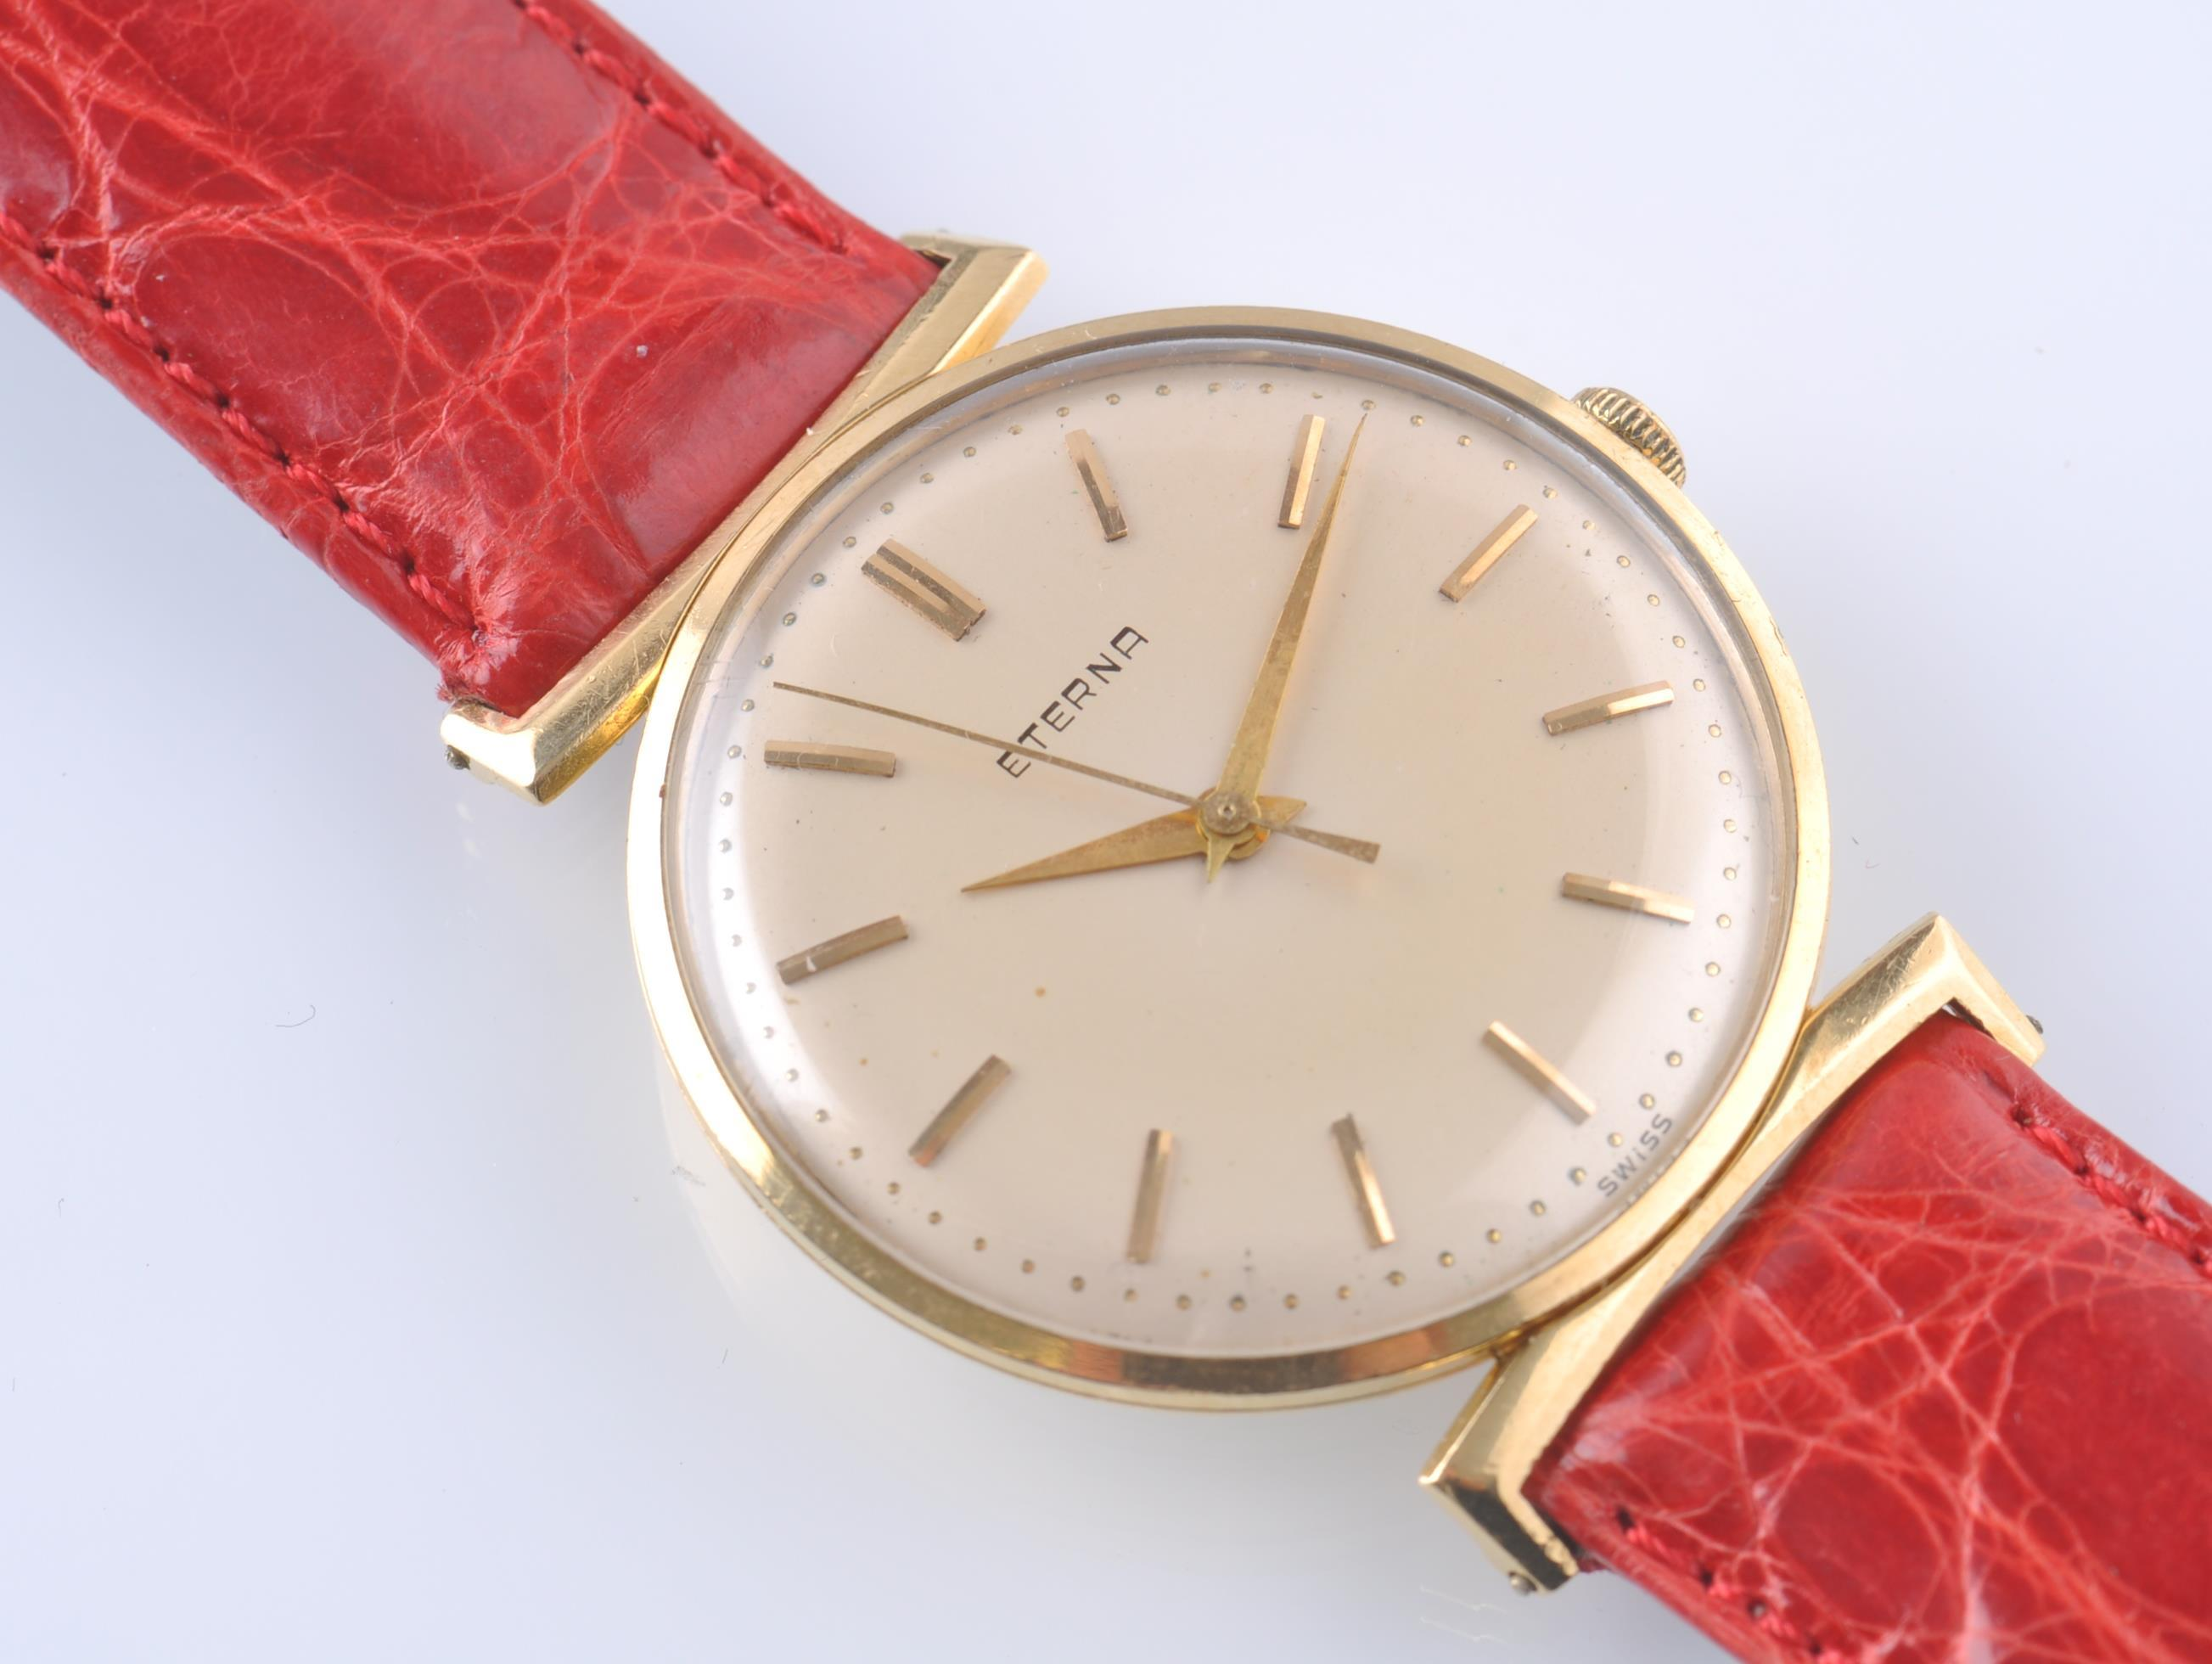 ETERNA 18CT GOLD 1950'S VINTAGE WRIST WATCH